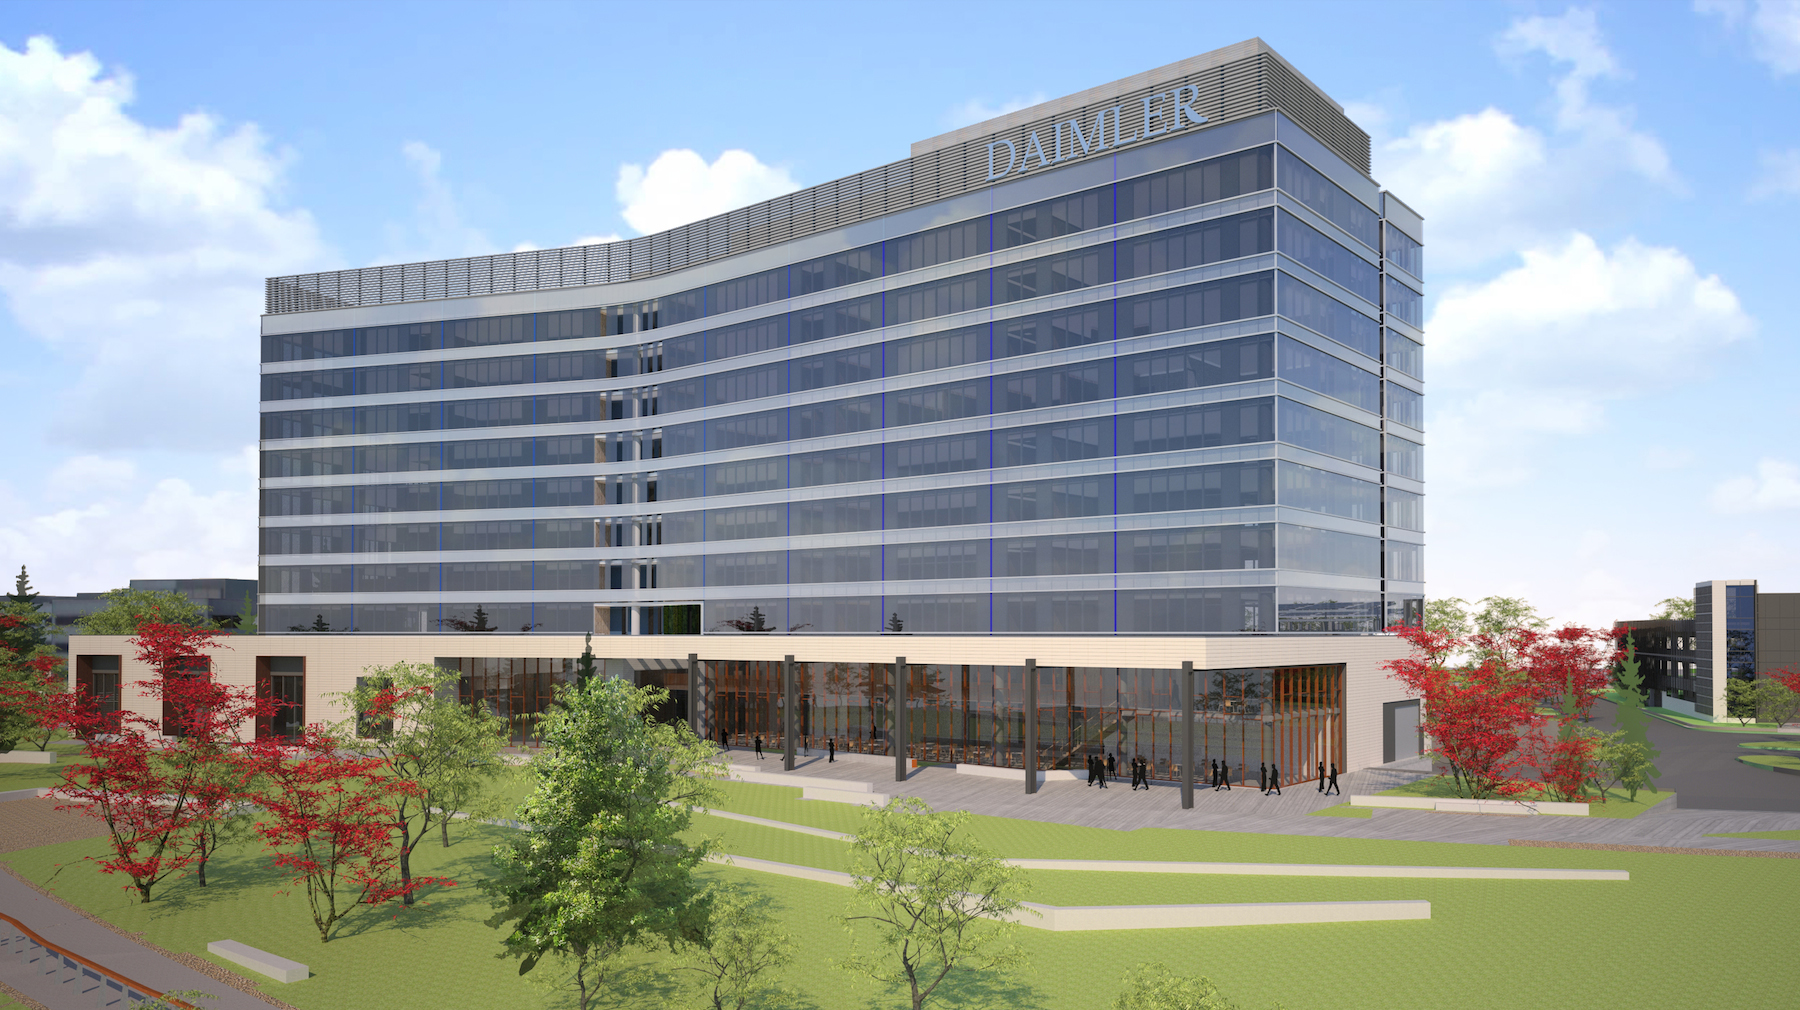 Daimler trucks north america hq under construction next for Mercedes benz north america headquarters